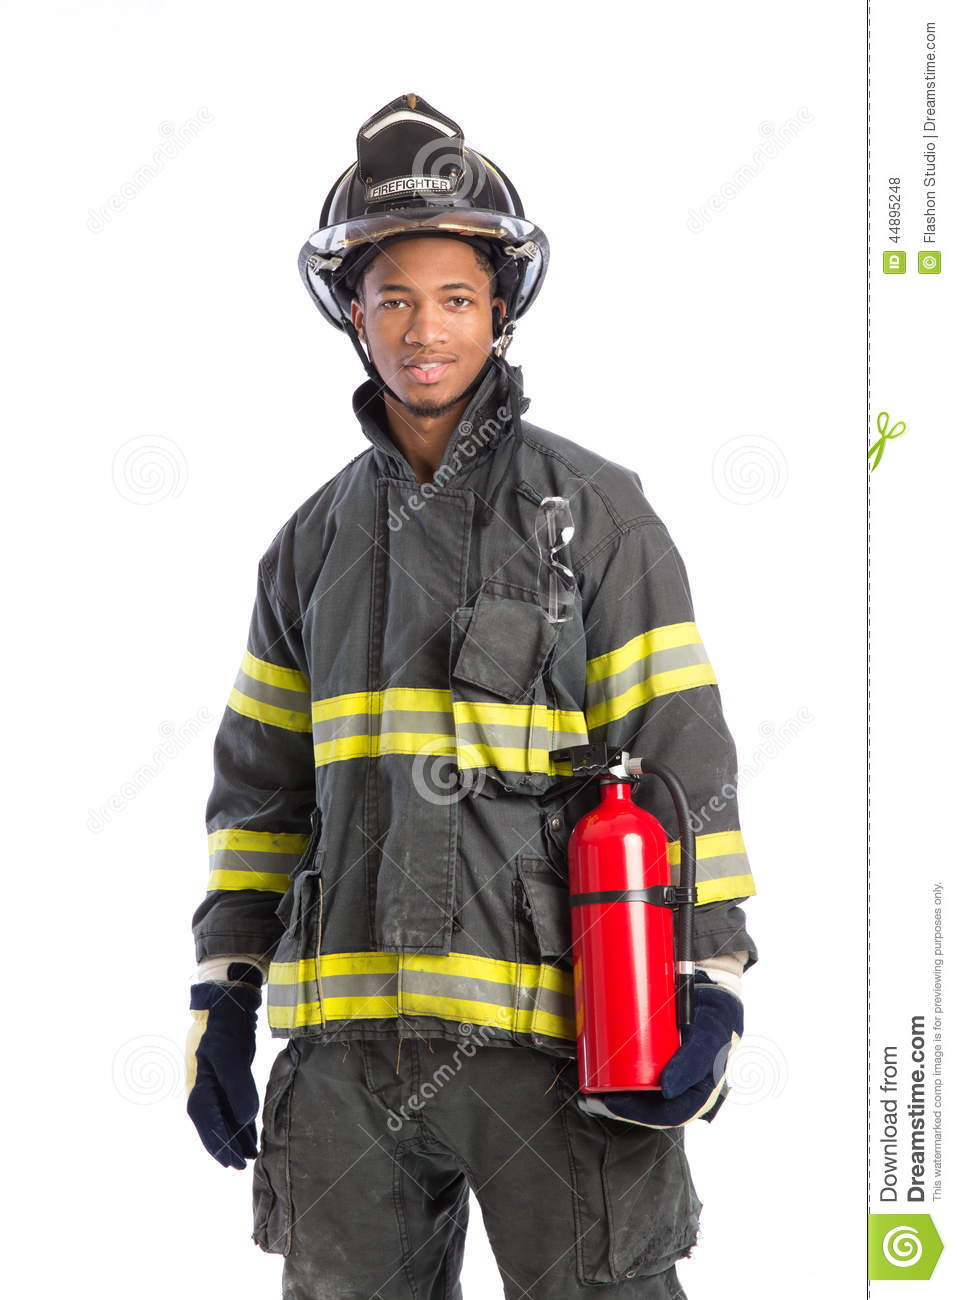 ... In Uniform Holding Fire Extinguisher Stock Photo - Image: 44895248